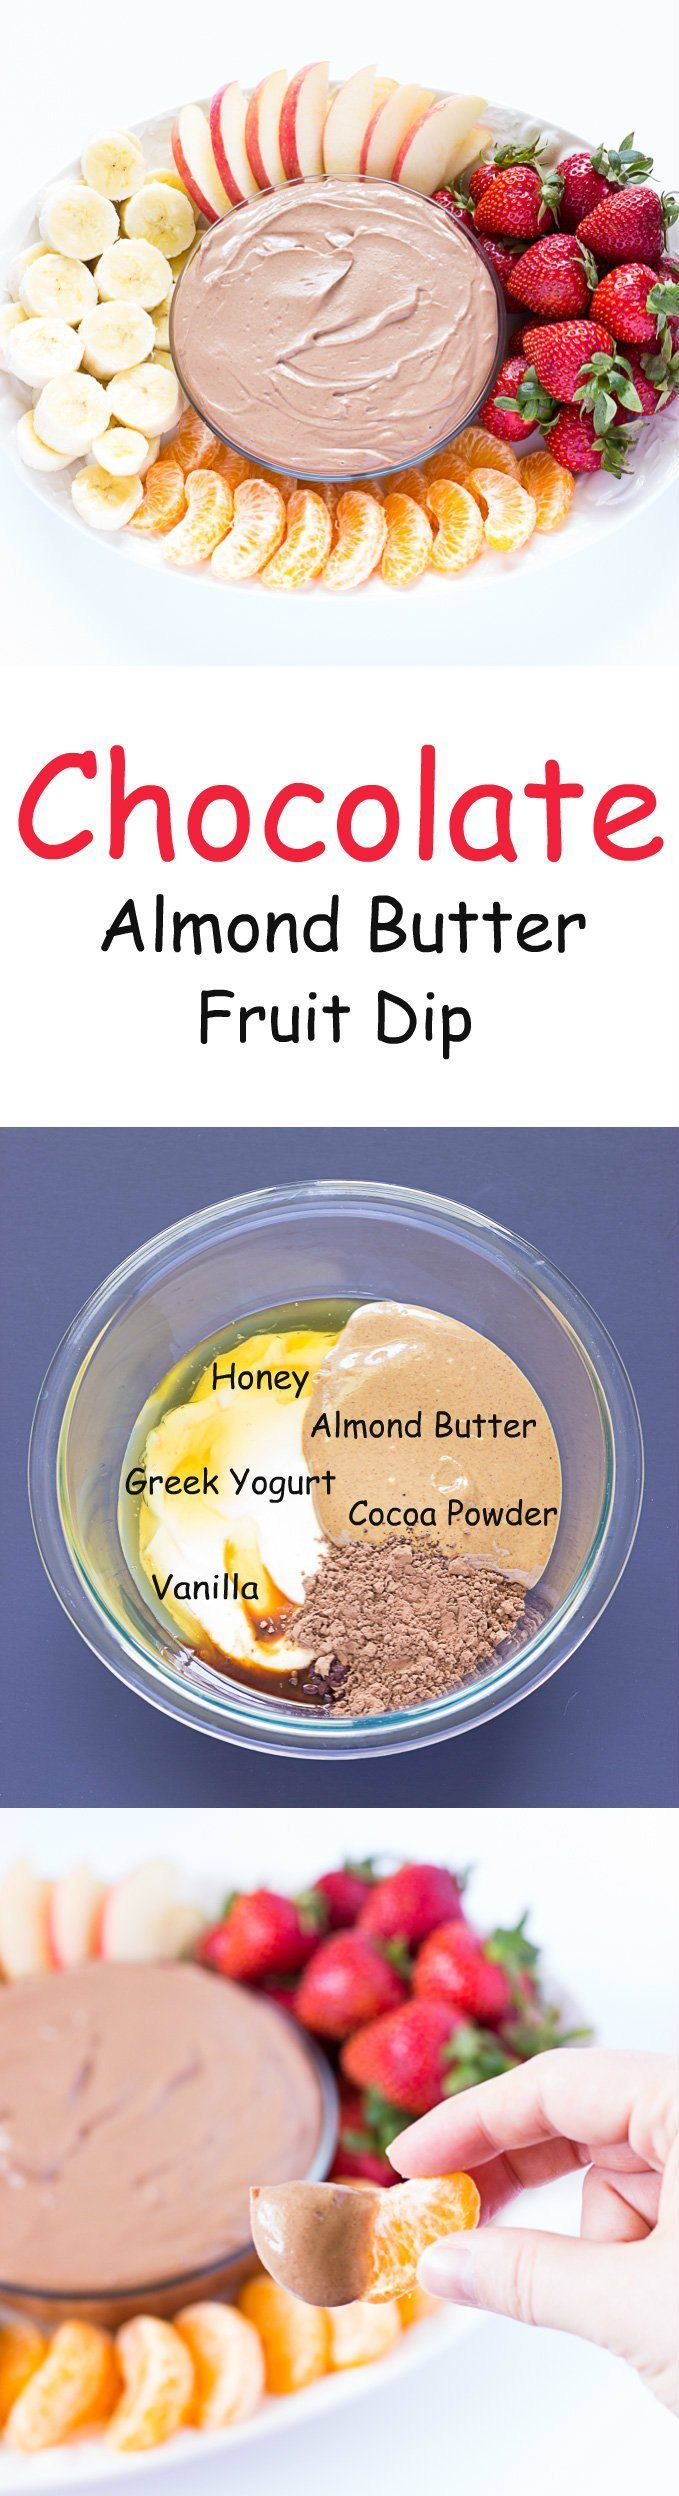 Chocolate Almond Butter Fruit Dip - A #healthy yogurt based dip perfect for a snack, appetizer, or even dessert. #ad #CrunchOn